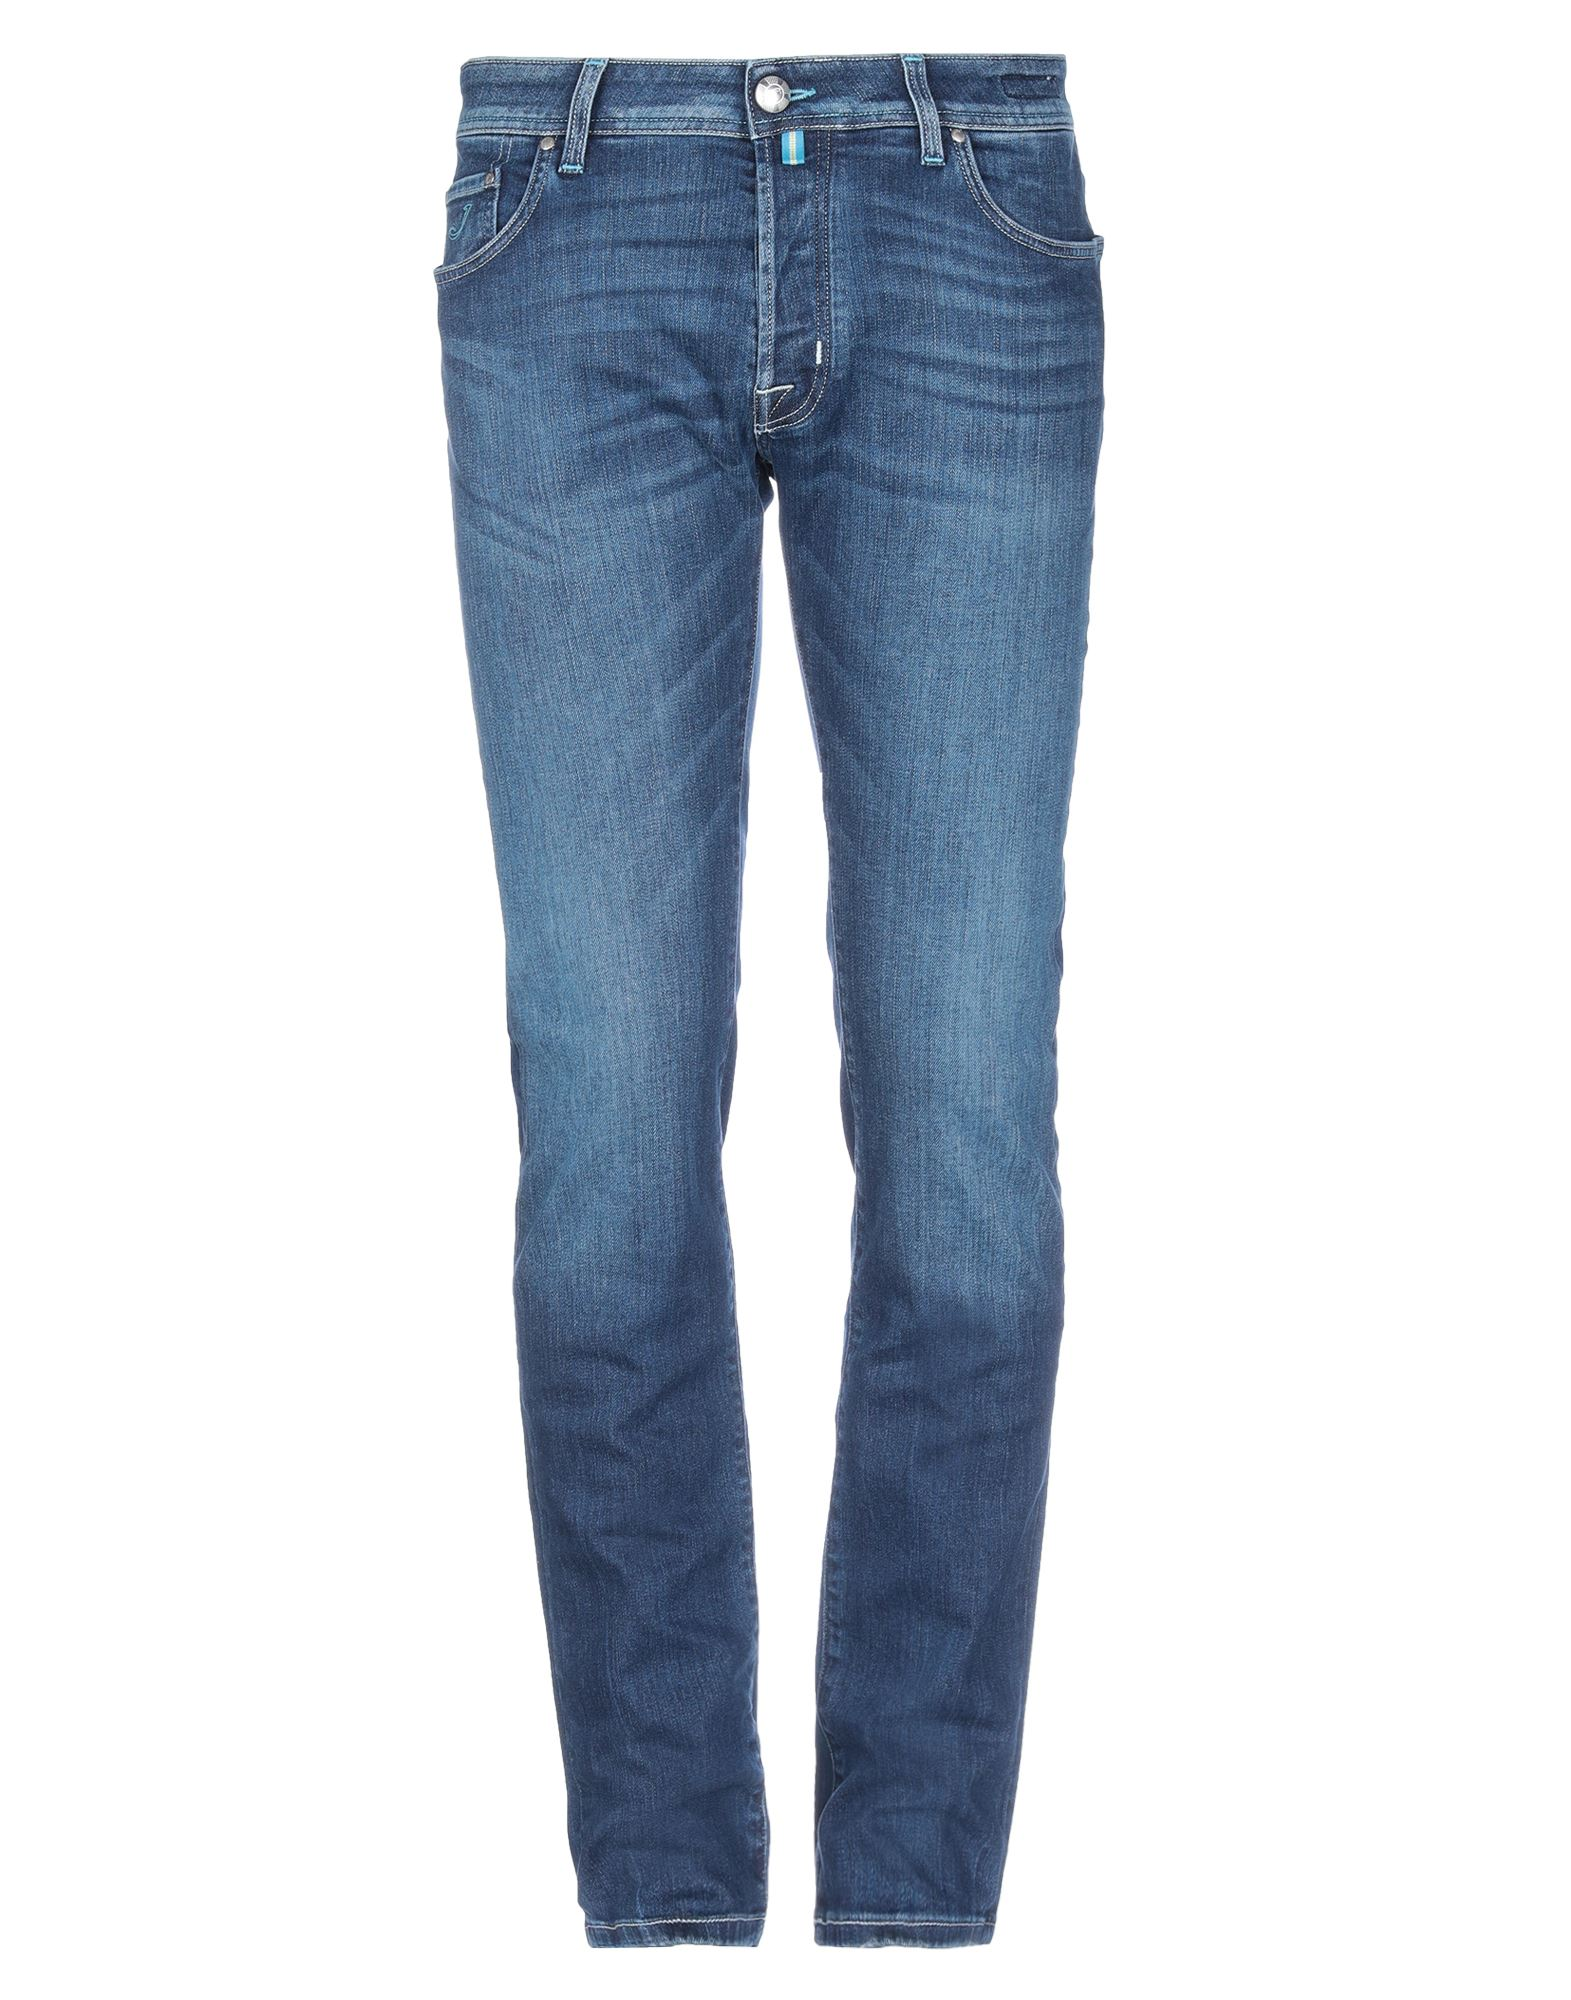 JACOB COHЁN Denim pants - Item 42829028